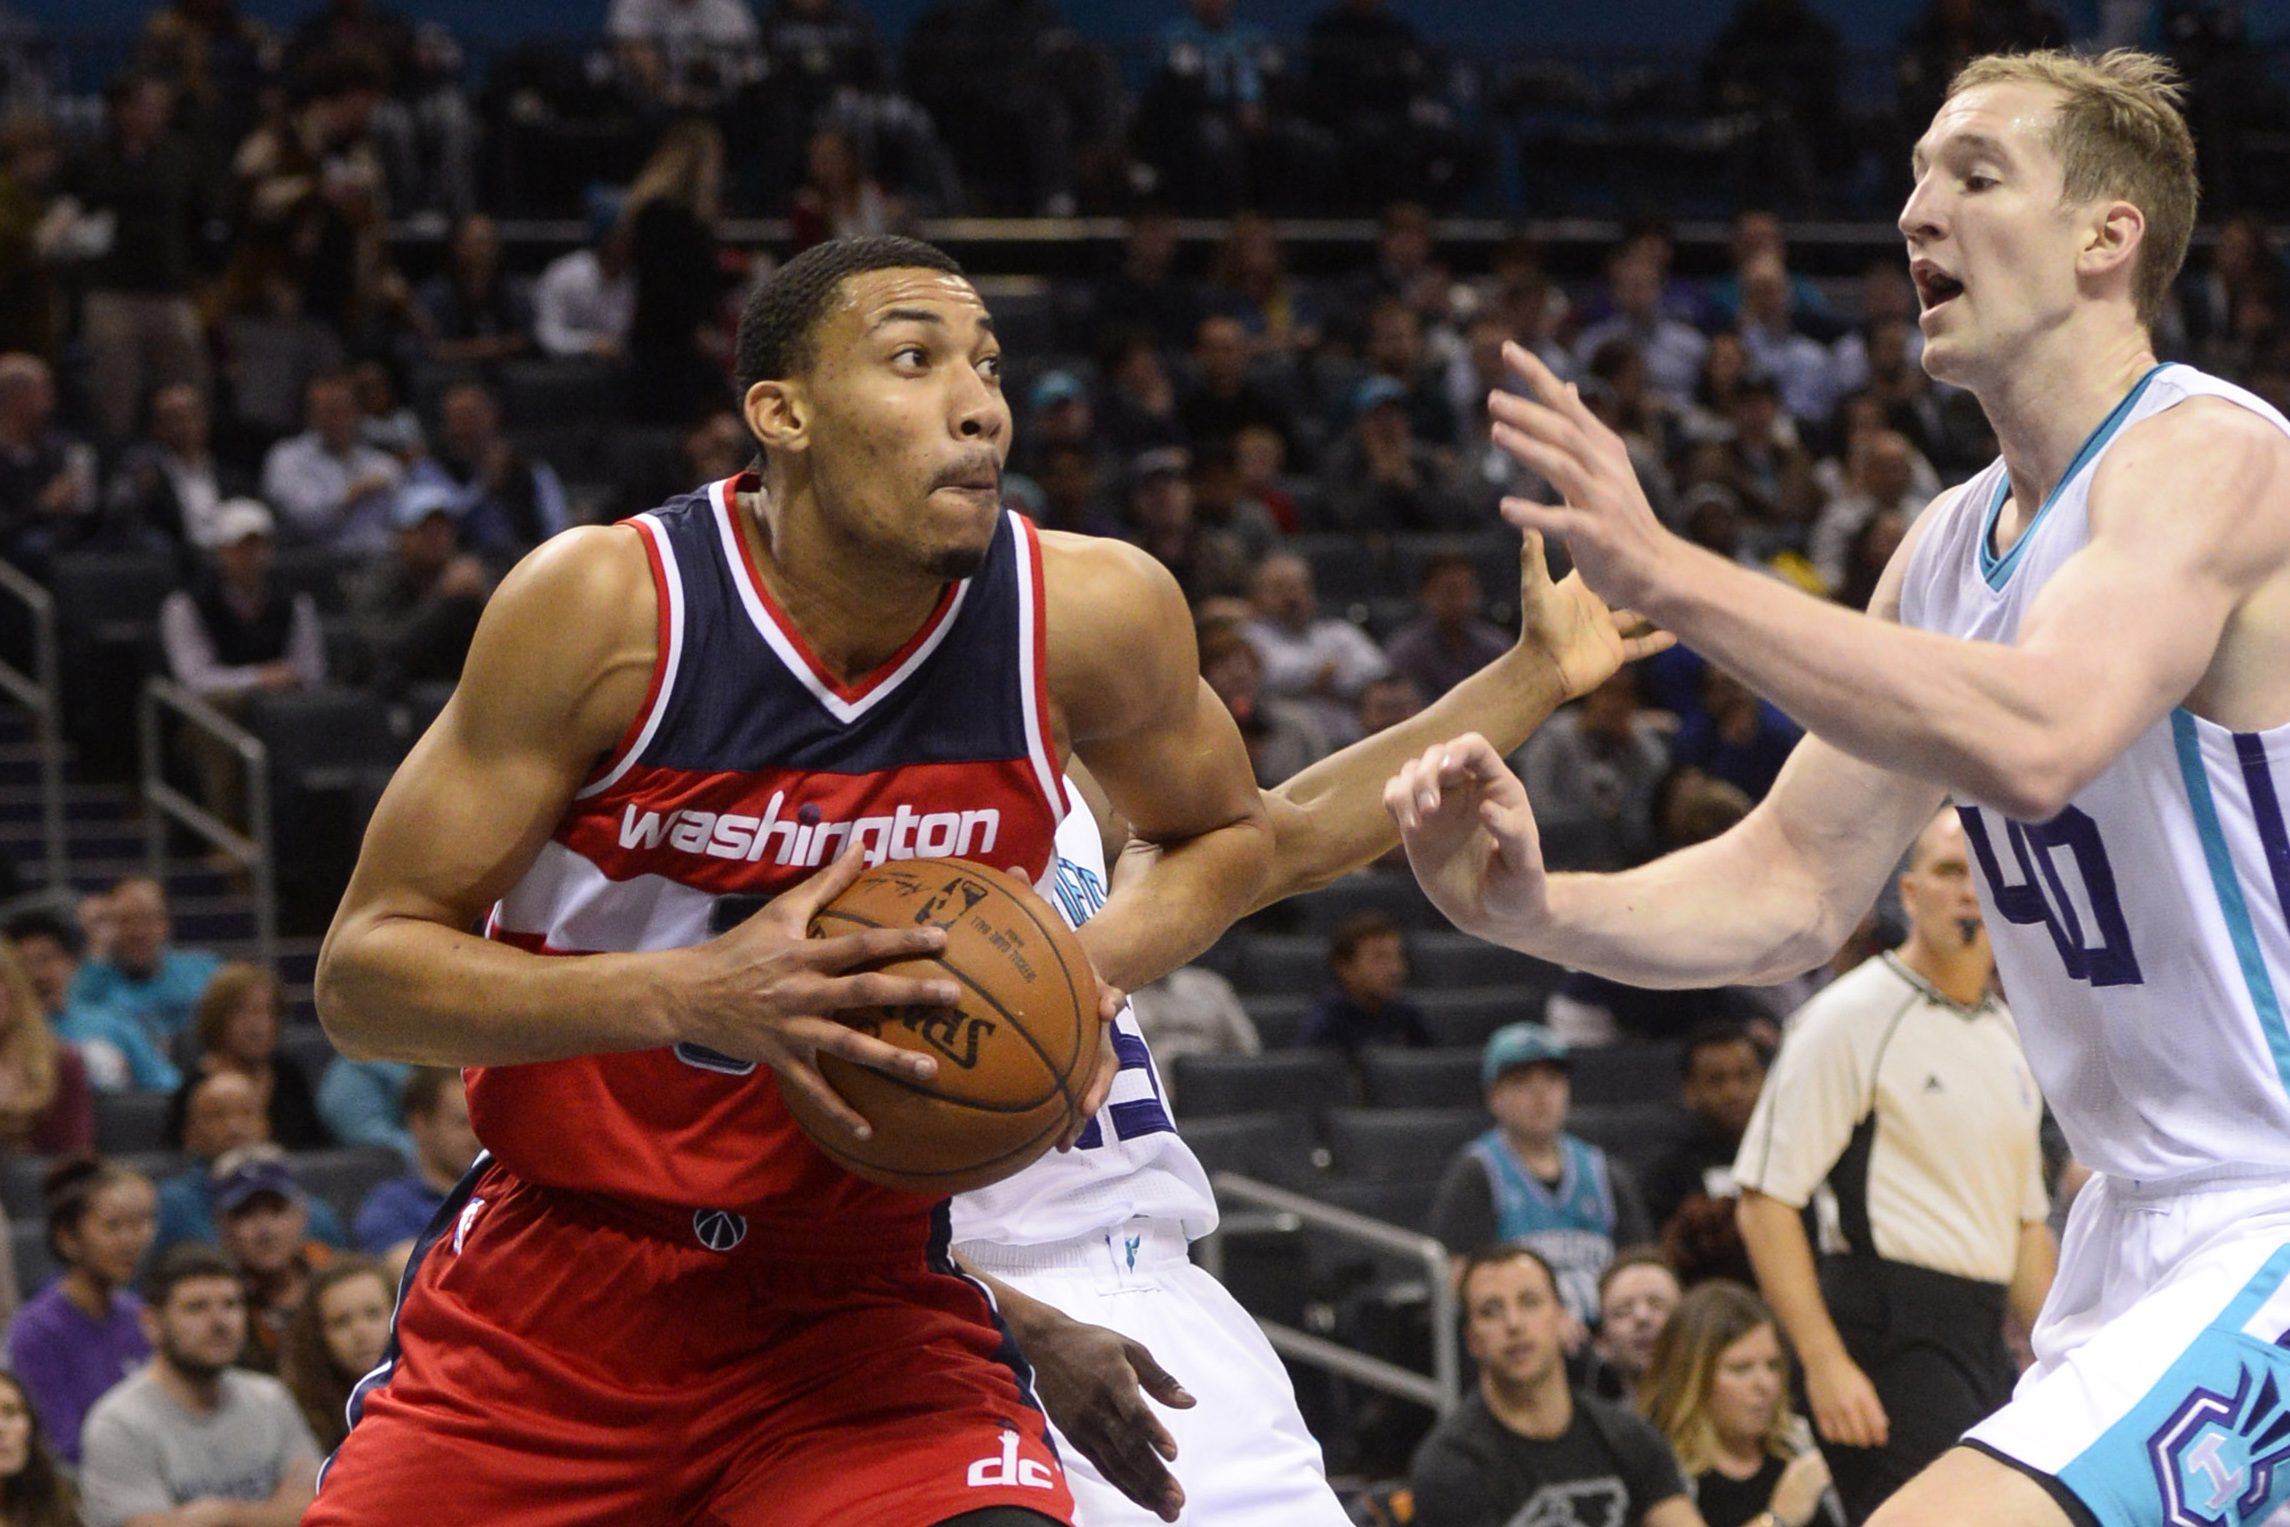 Jan 23, 2017; Charlotte, NC, USA; Washington Wizards forward Otto Porter (22) looks to shoot as he is defended by Charlotte Hornets forward center Cody Zeller (40) during the first half of the game at the Spectrum Center. Mandatory Credit: Sam Sharpe-USA TODAY Sports